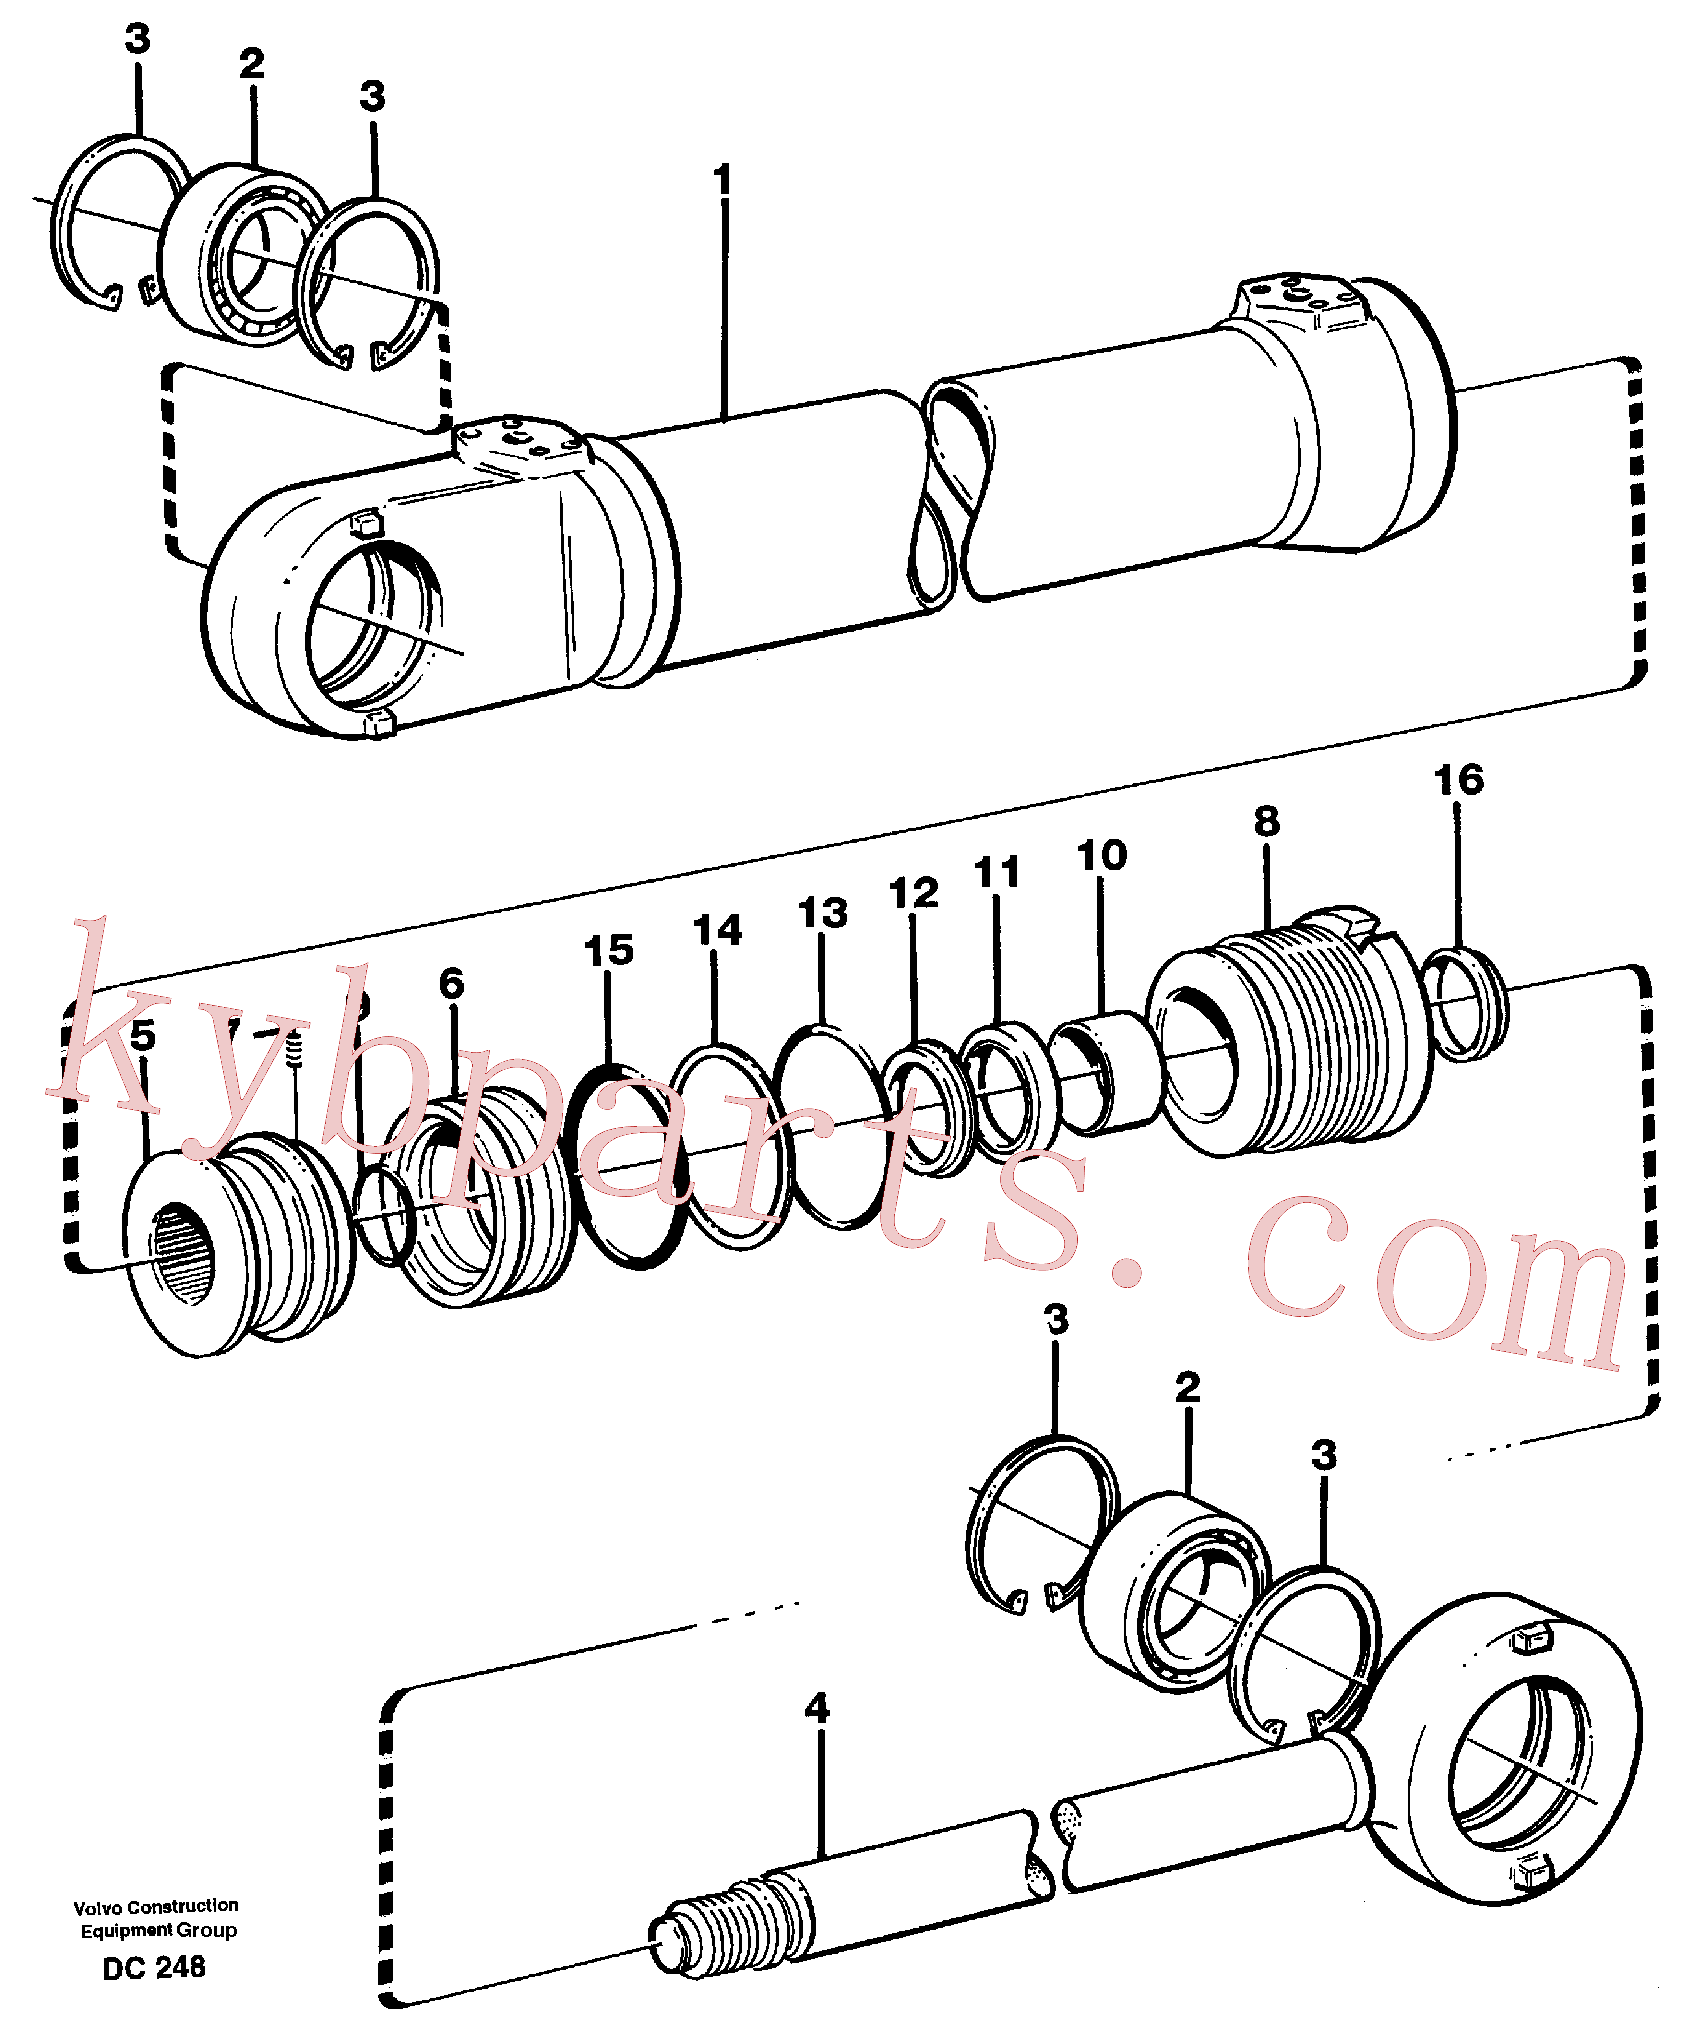 VOE11704127 for Volvo Hydraulic cylinder(DC248 assembly)